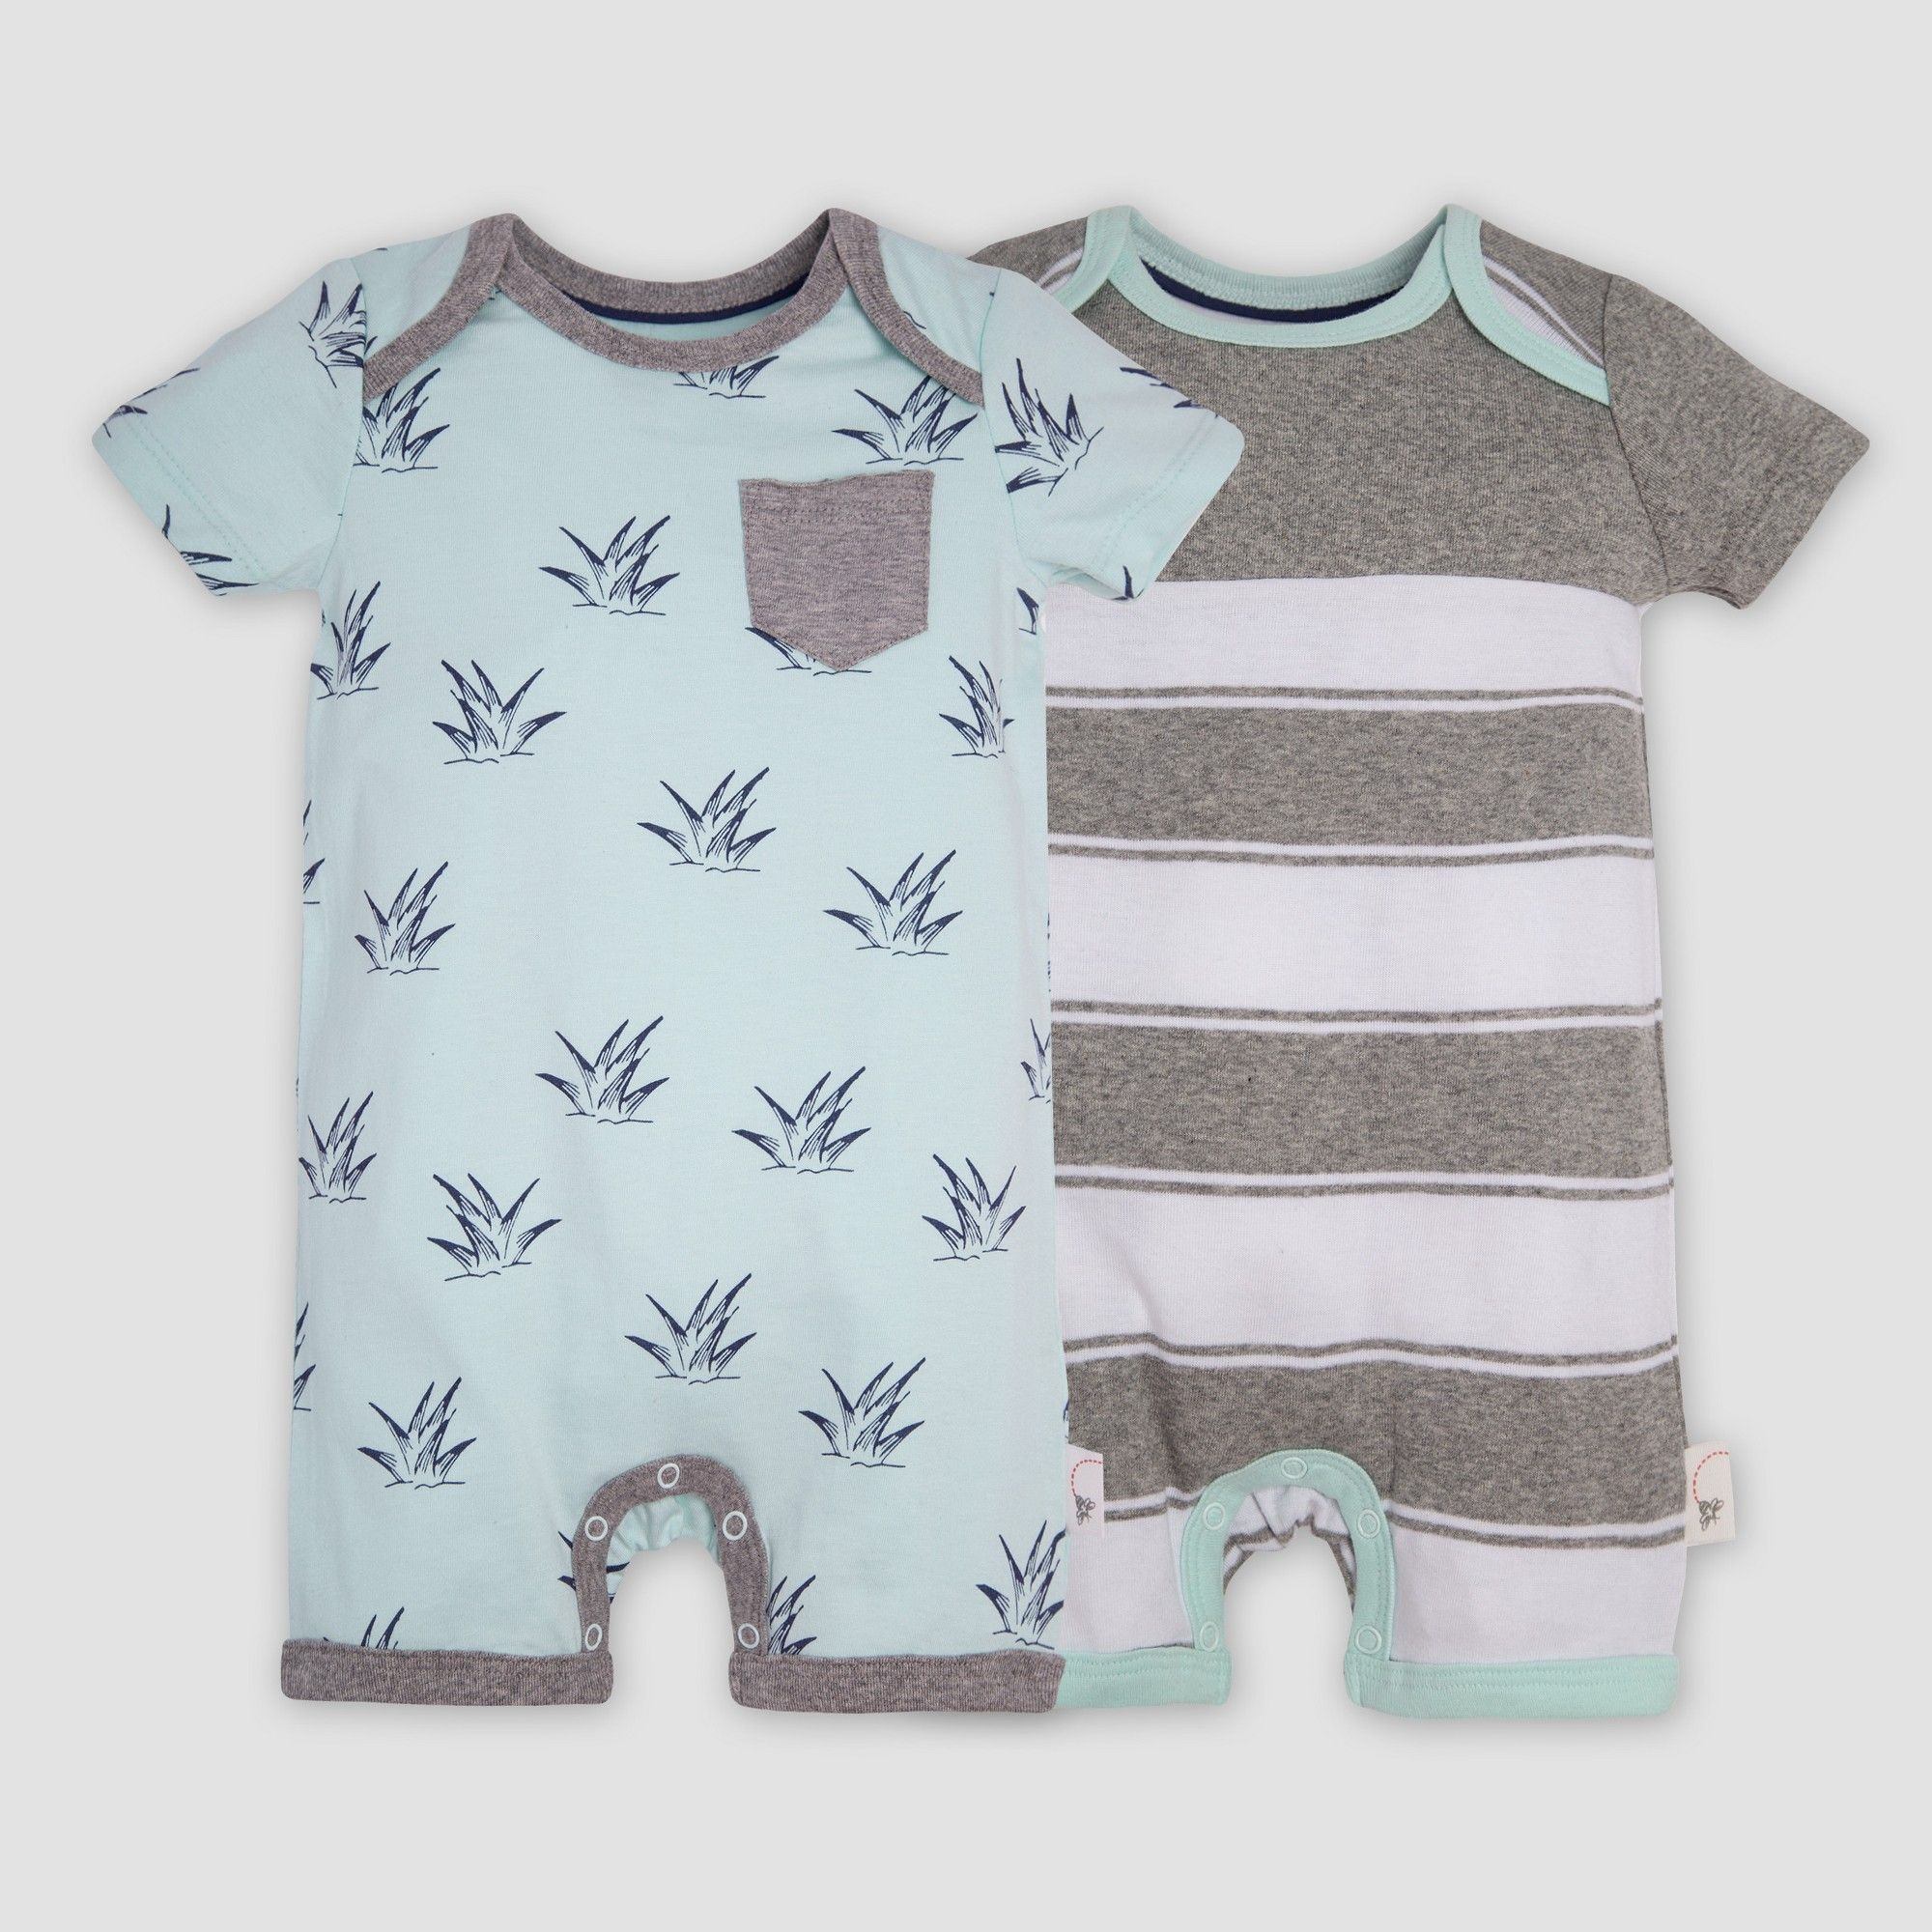 Burt/'s Bees Baby Boy 2 Piece Romper Set ~ Blue White /& Gray ~ Organic Cotton~